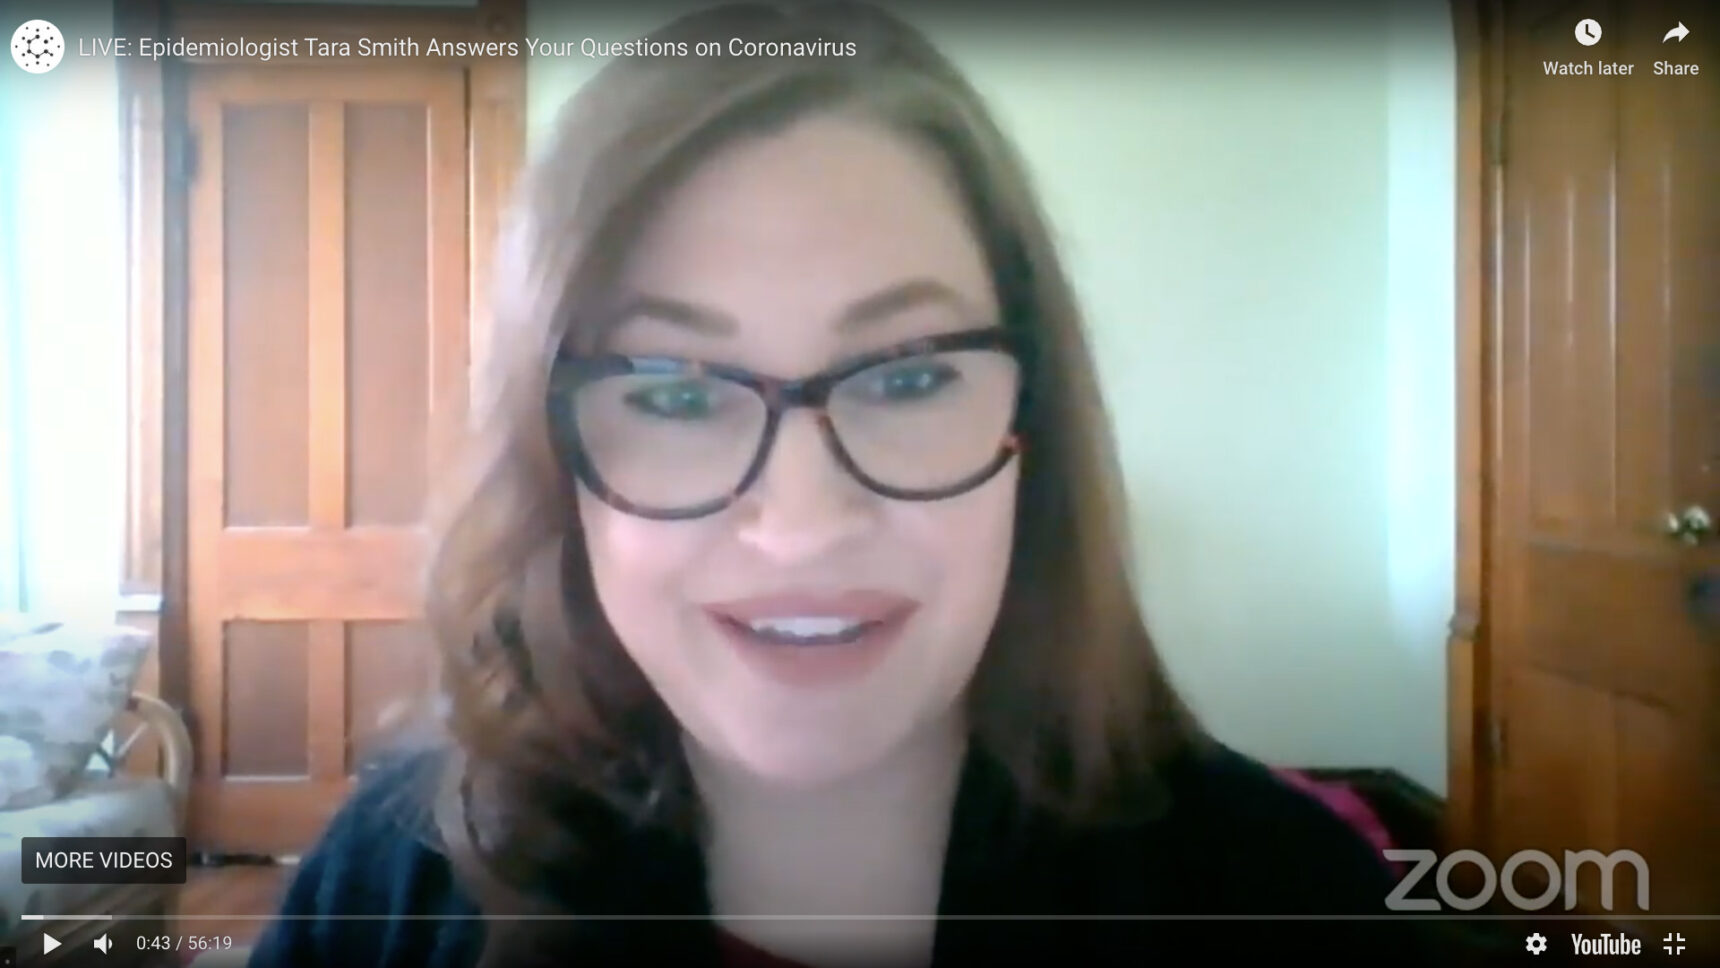 Highlights from Tara C. Smith's live YouTube event on May 1, 2020, in which she answered reader questions about the COVID-19 pandemic.